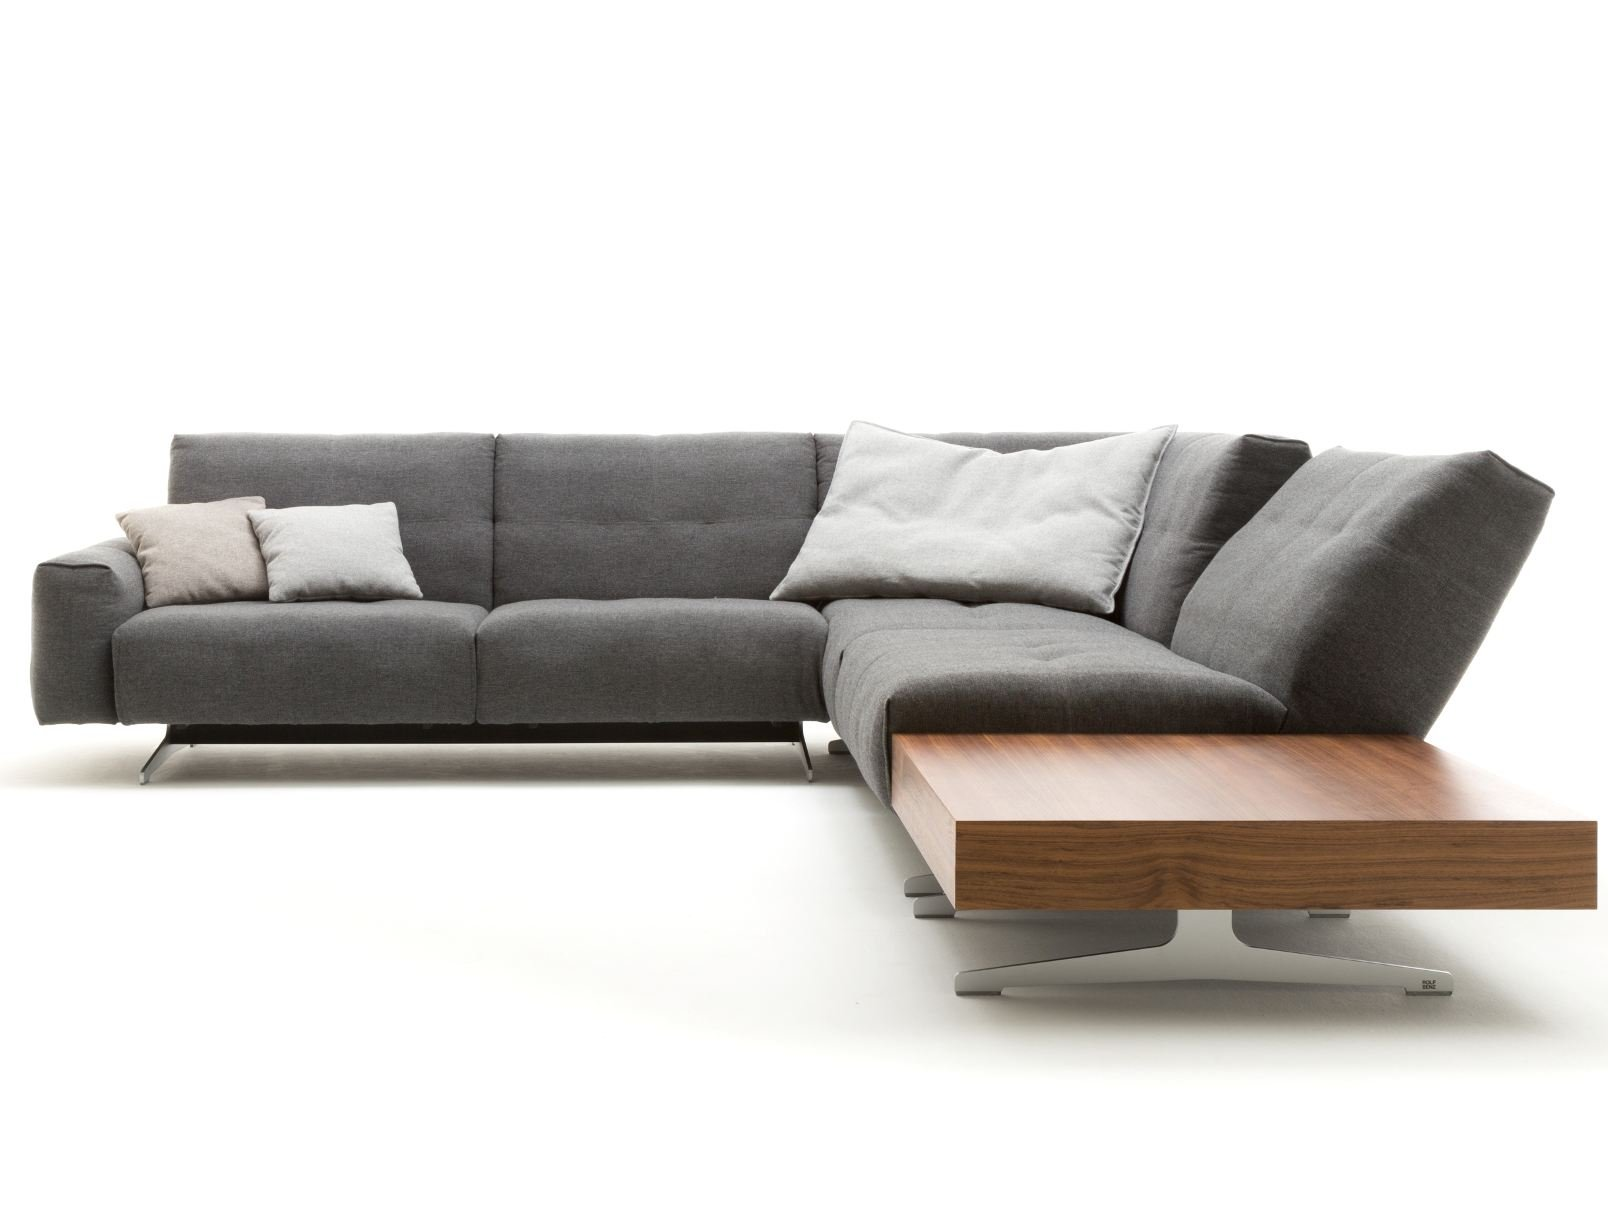 benz sofa excellent rolf benz nuvola by rolf benz modular. Black Bedroom Furniture Sets. Home Design Ideas